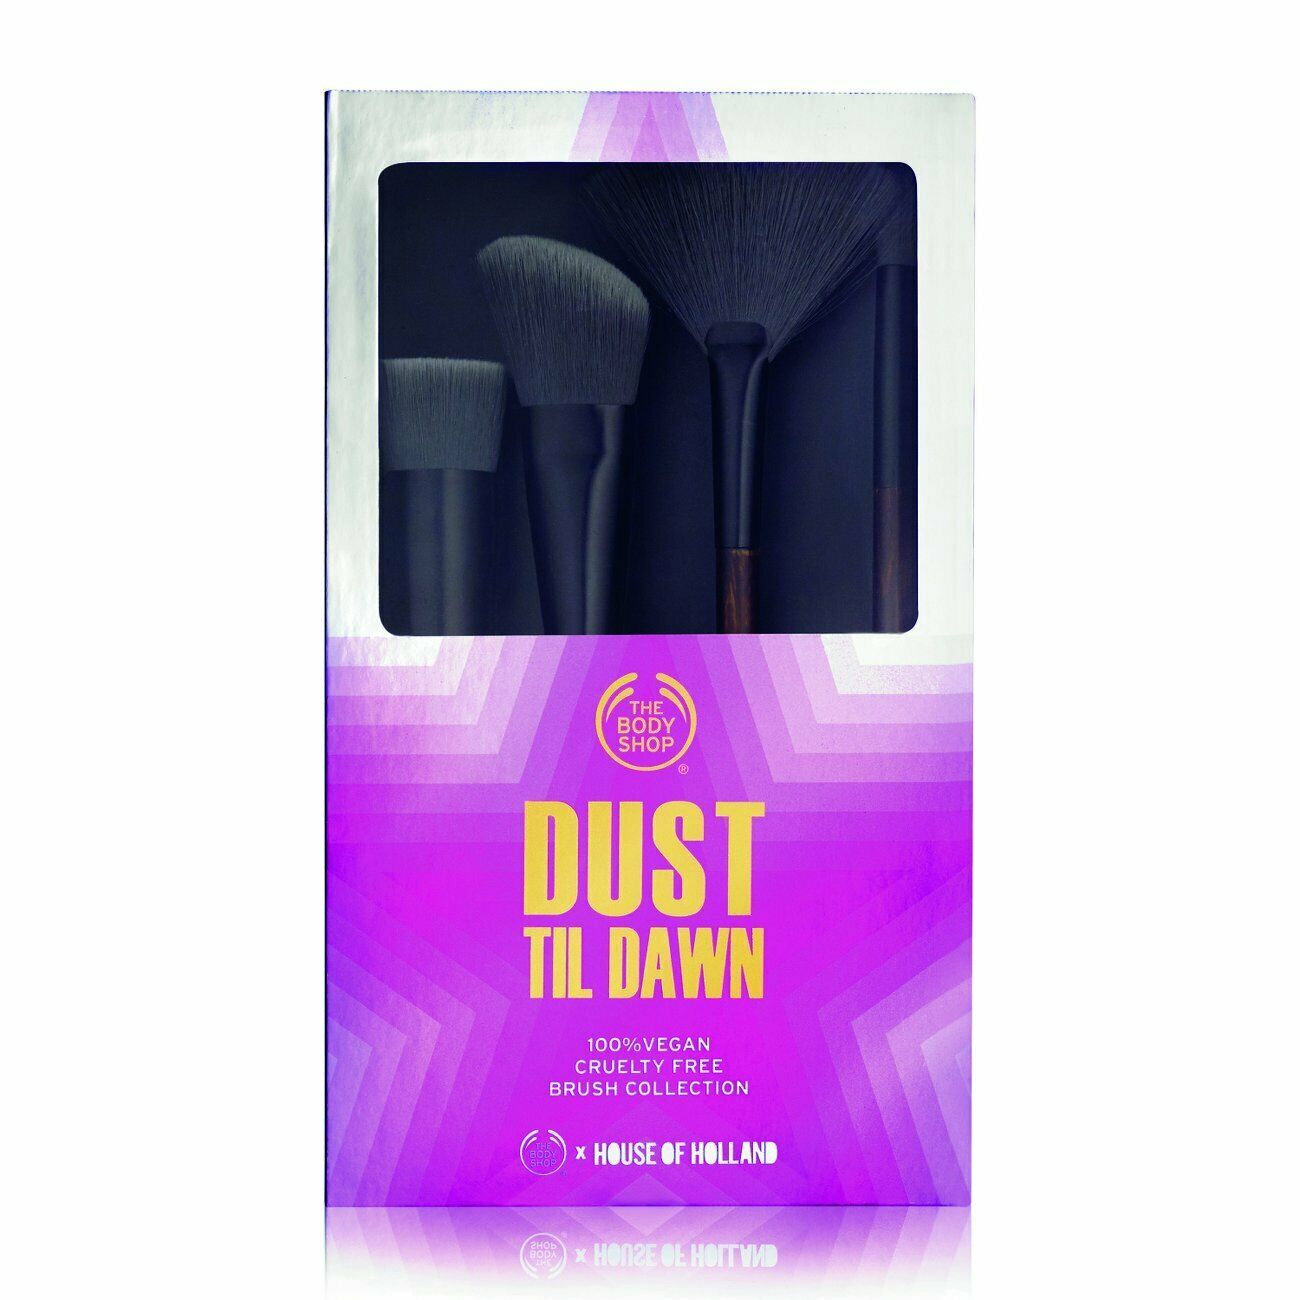 THE BODY SHOP MAKEUP BRUSH COLLECTION 4 PC CRUELTY-FREE BRUSH GIFT SET BRAND NEW - $13.08